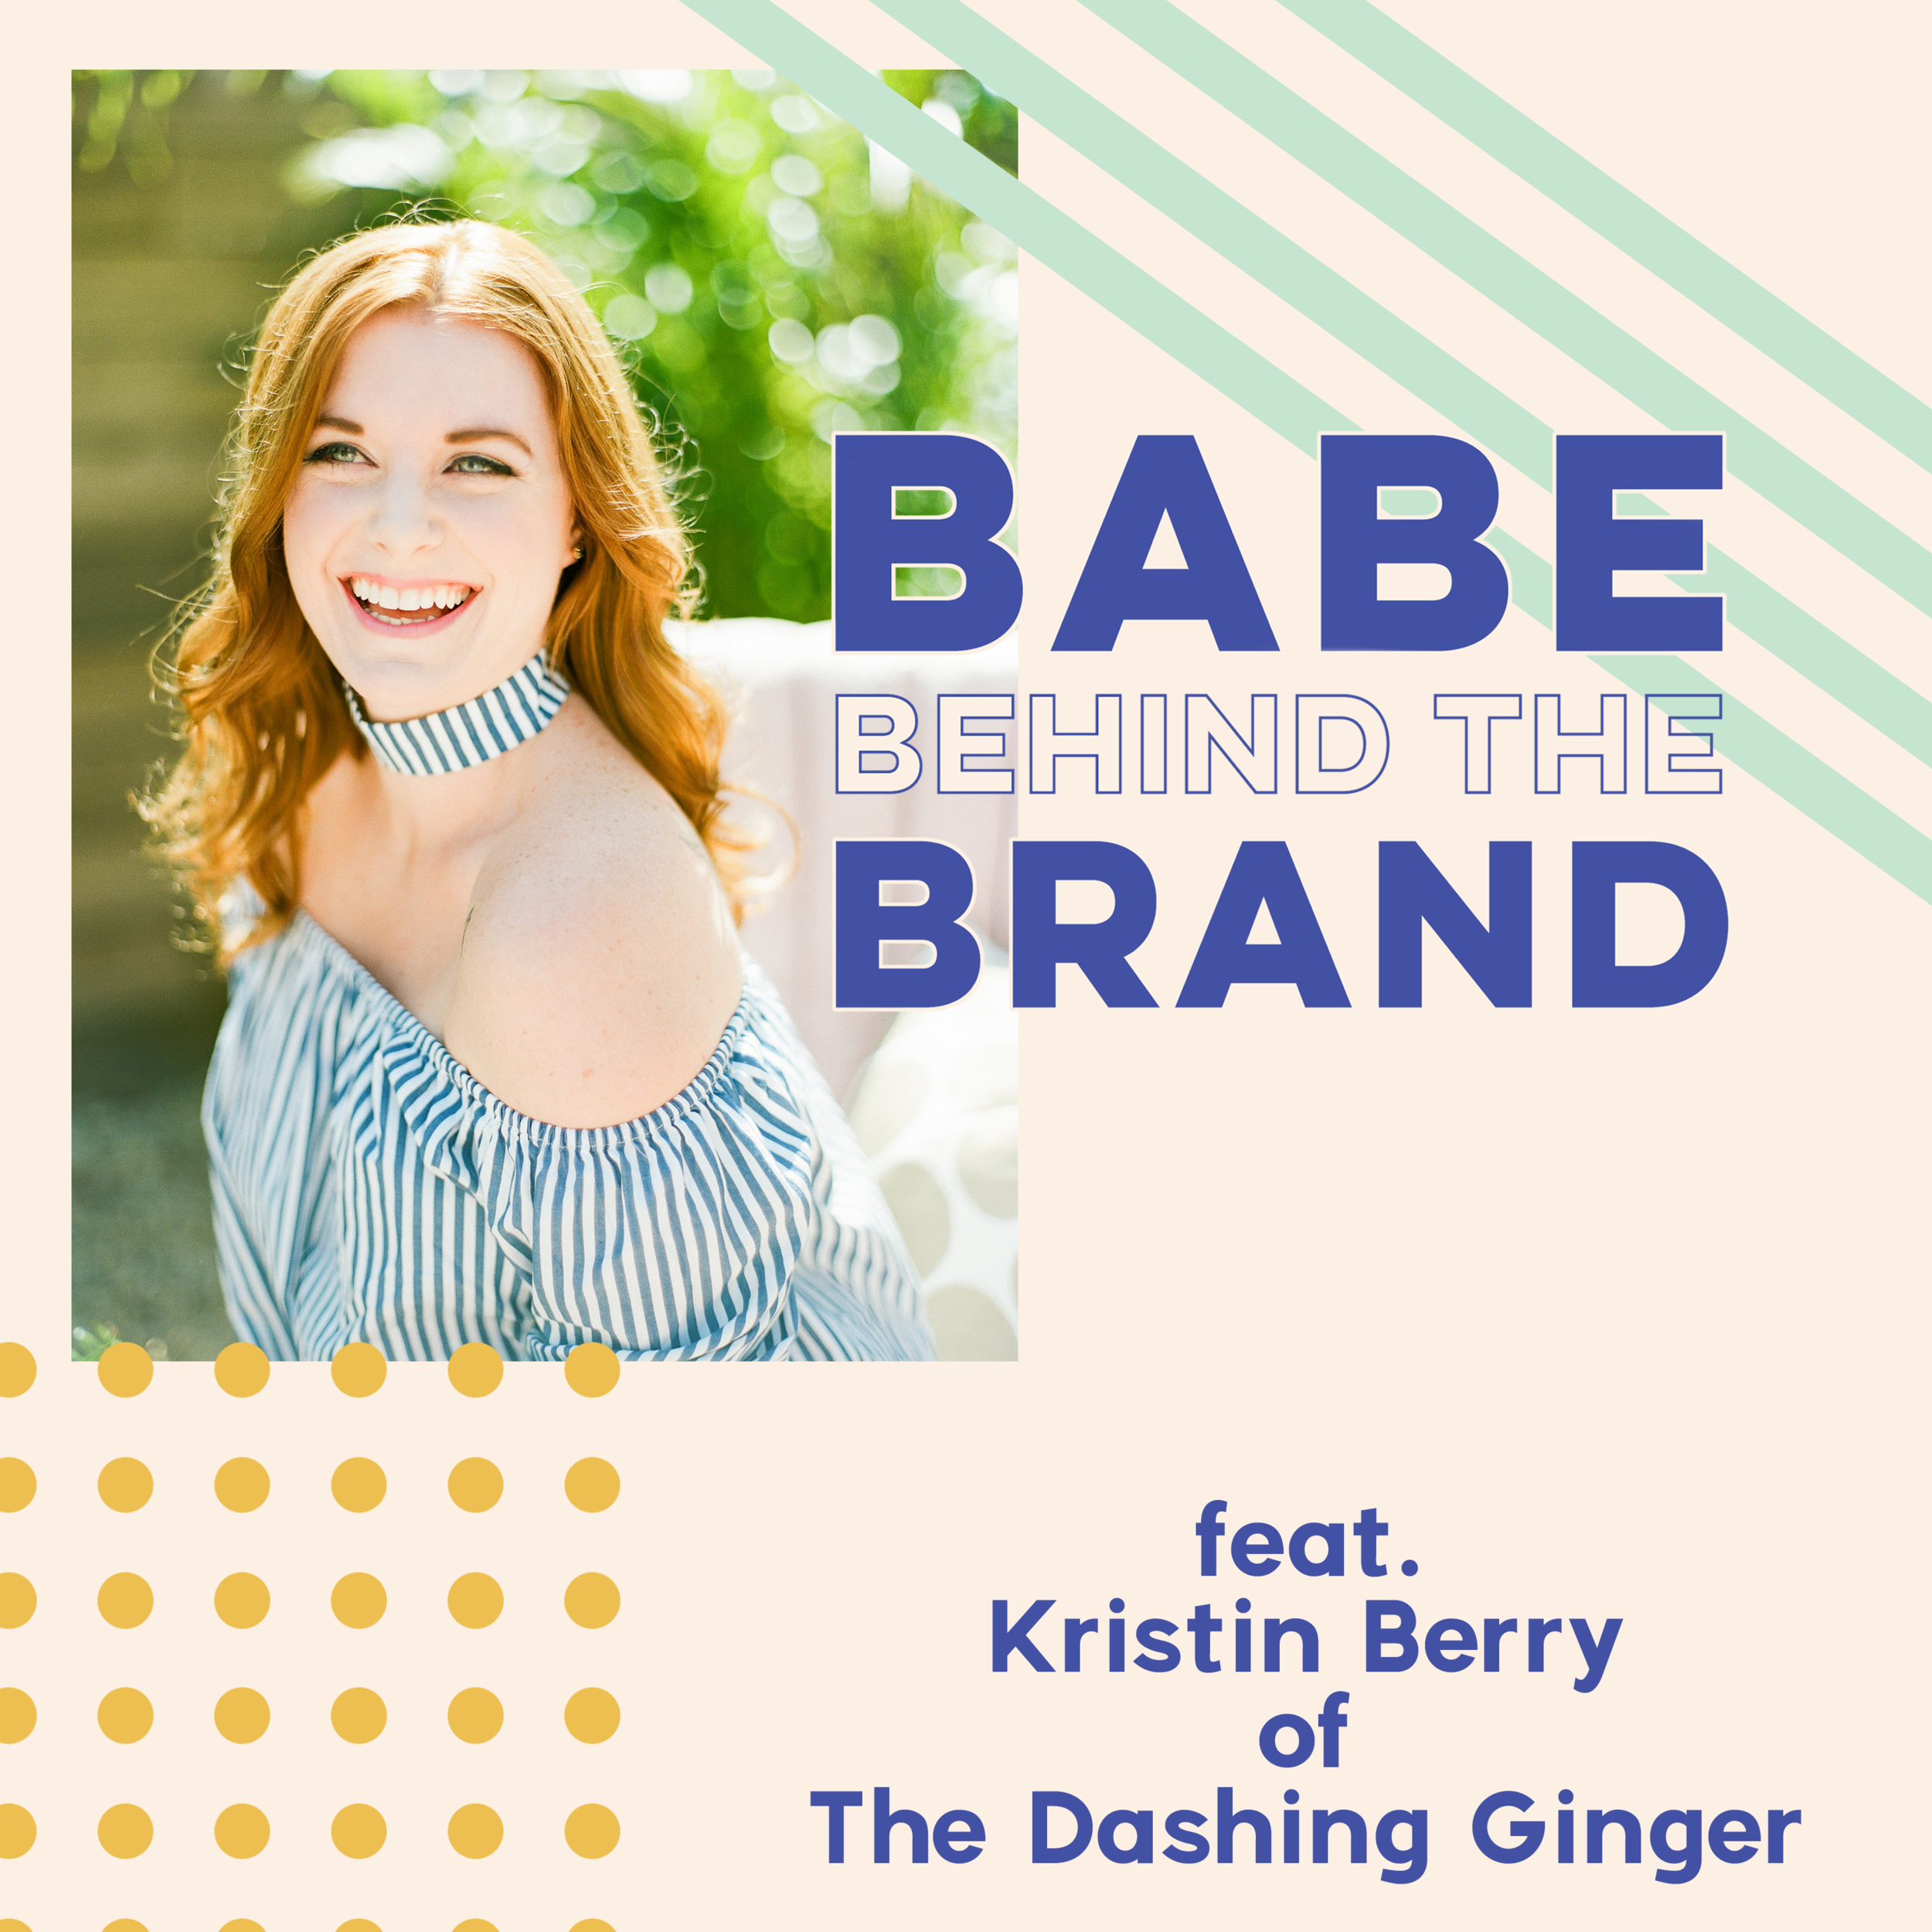 Babe Behind The Brand_Kristin Berry_The Dashing Ginger_Babe Crafted.png